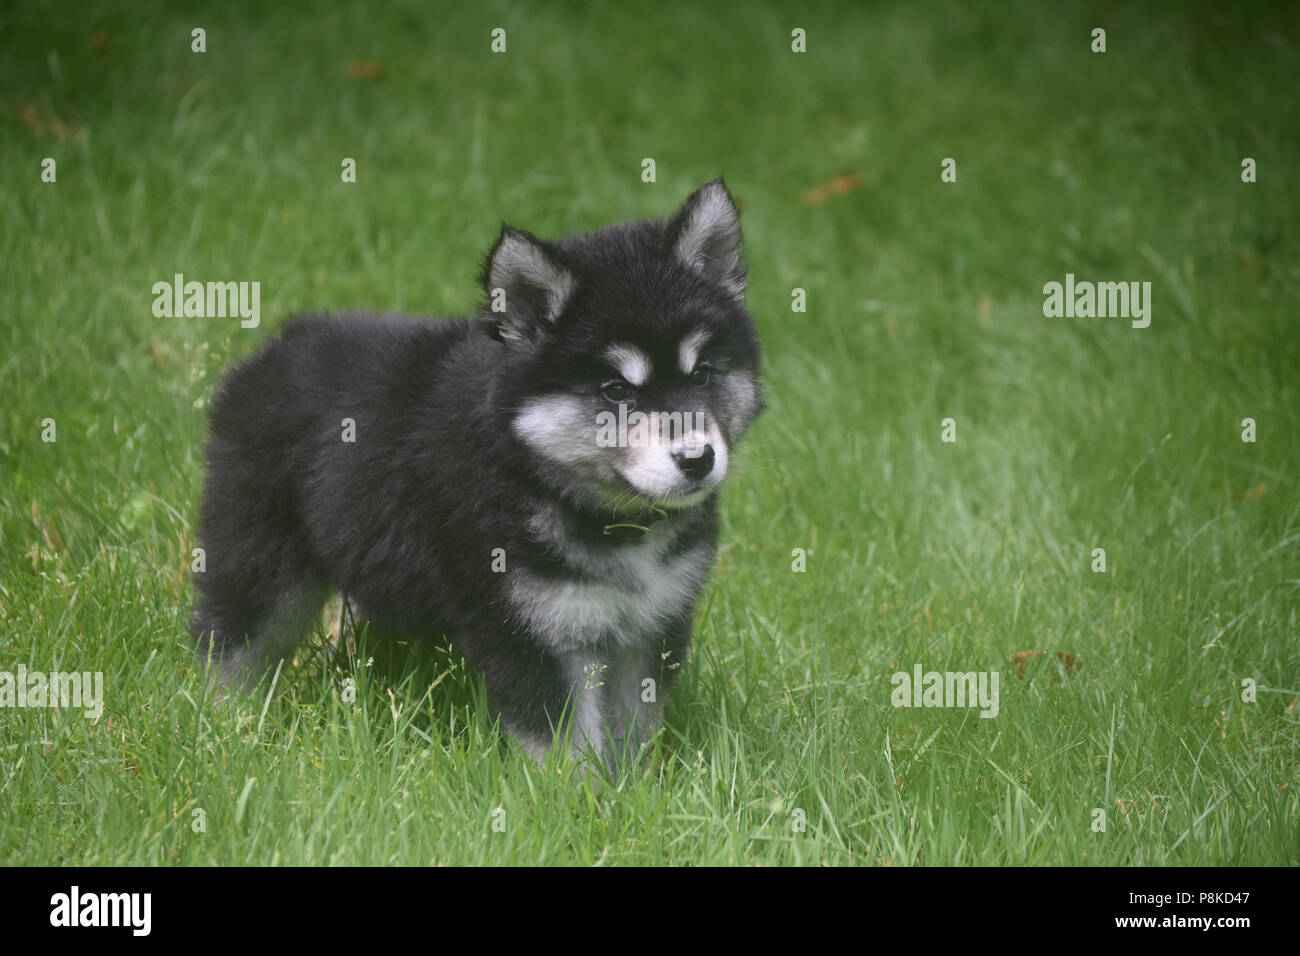 Beautiful Young Husky Puppy With Black White And Gray Fur Stock Photo Alamy